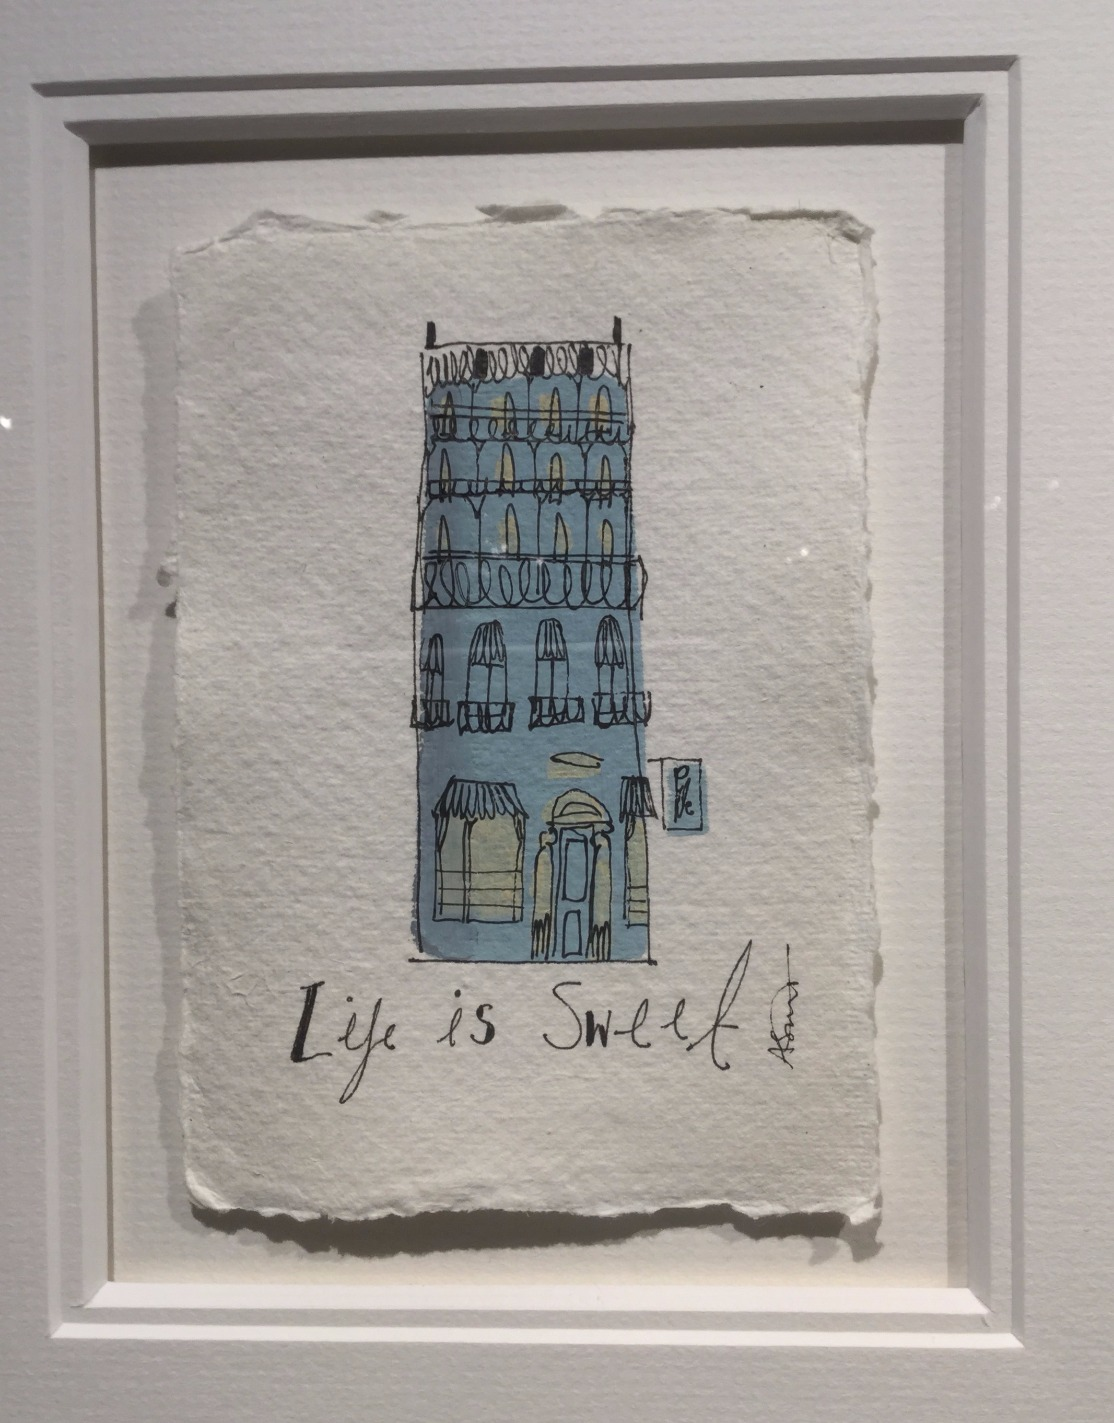 Life is Sweet by Angela Smyth